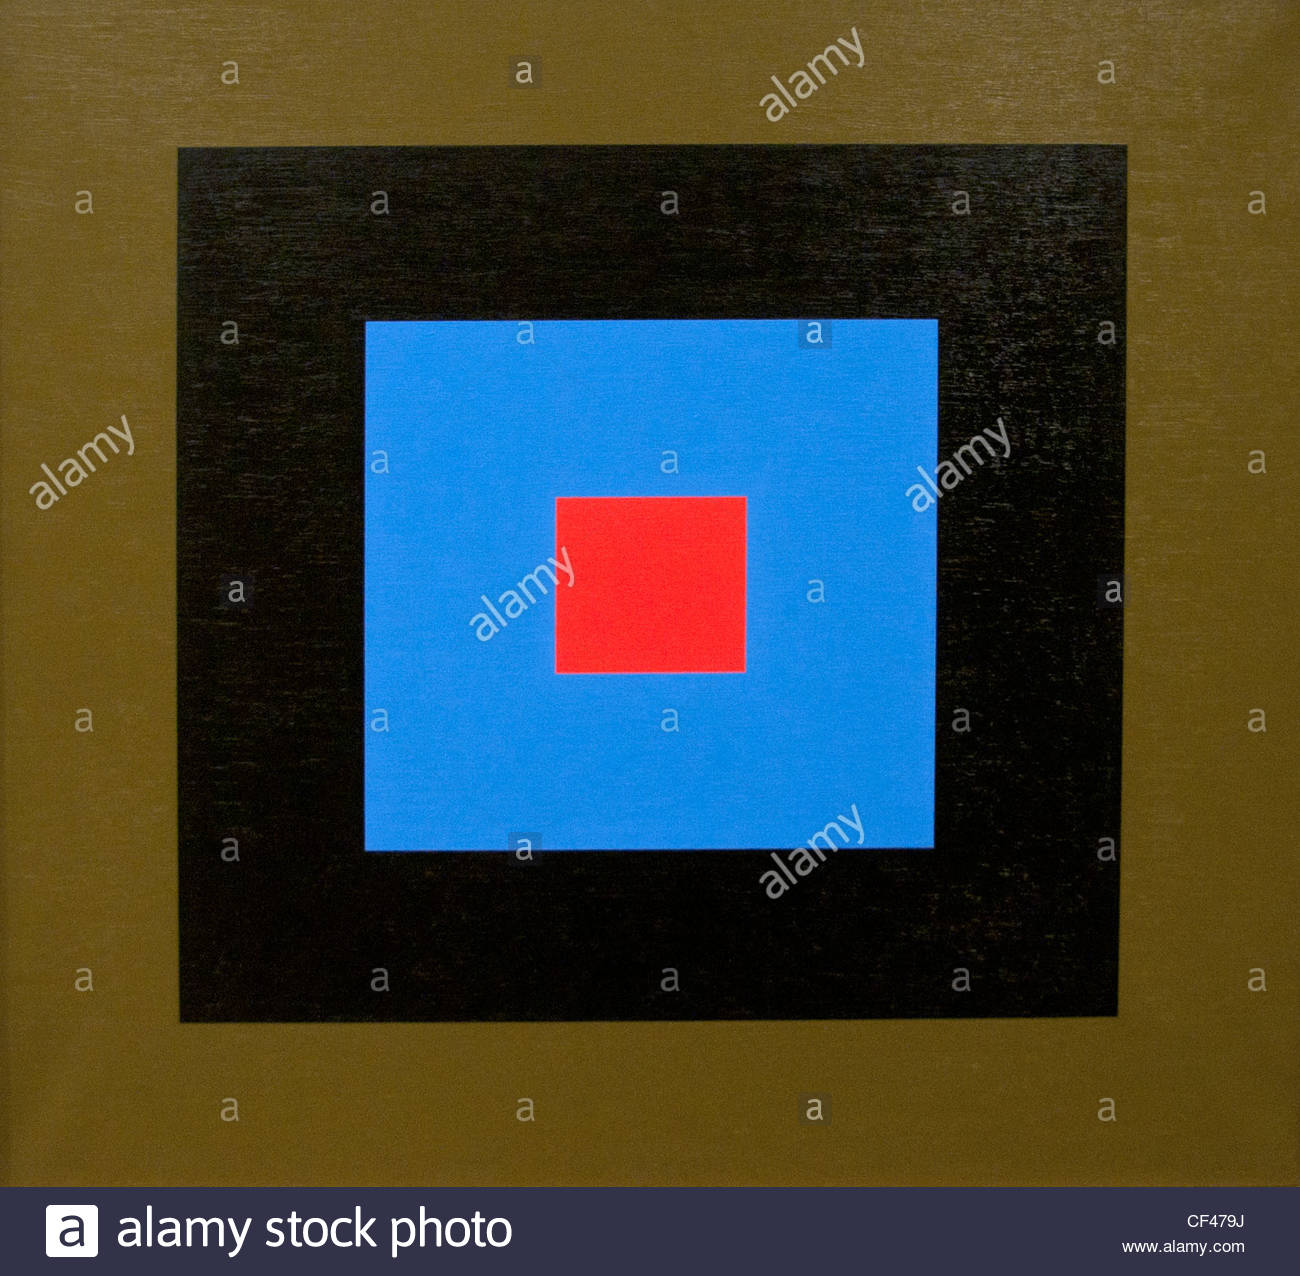 Commotion du point 12 Concussion of item 12 - 1971 Aurelie Nemours Painter France French - Stock Image